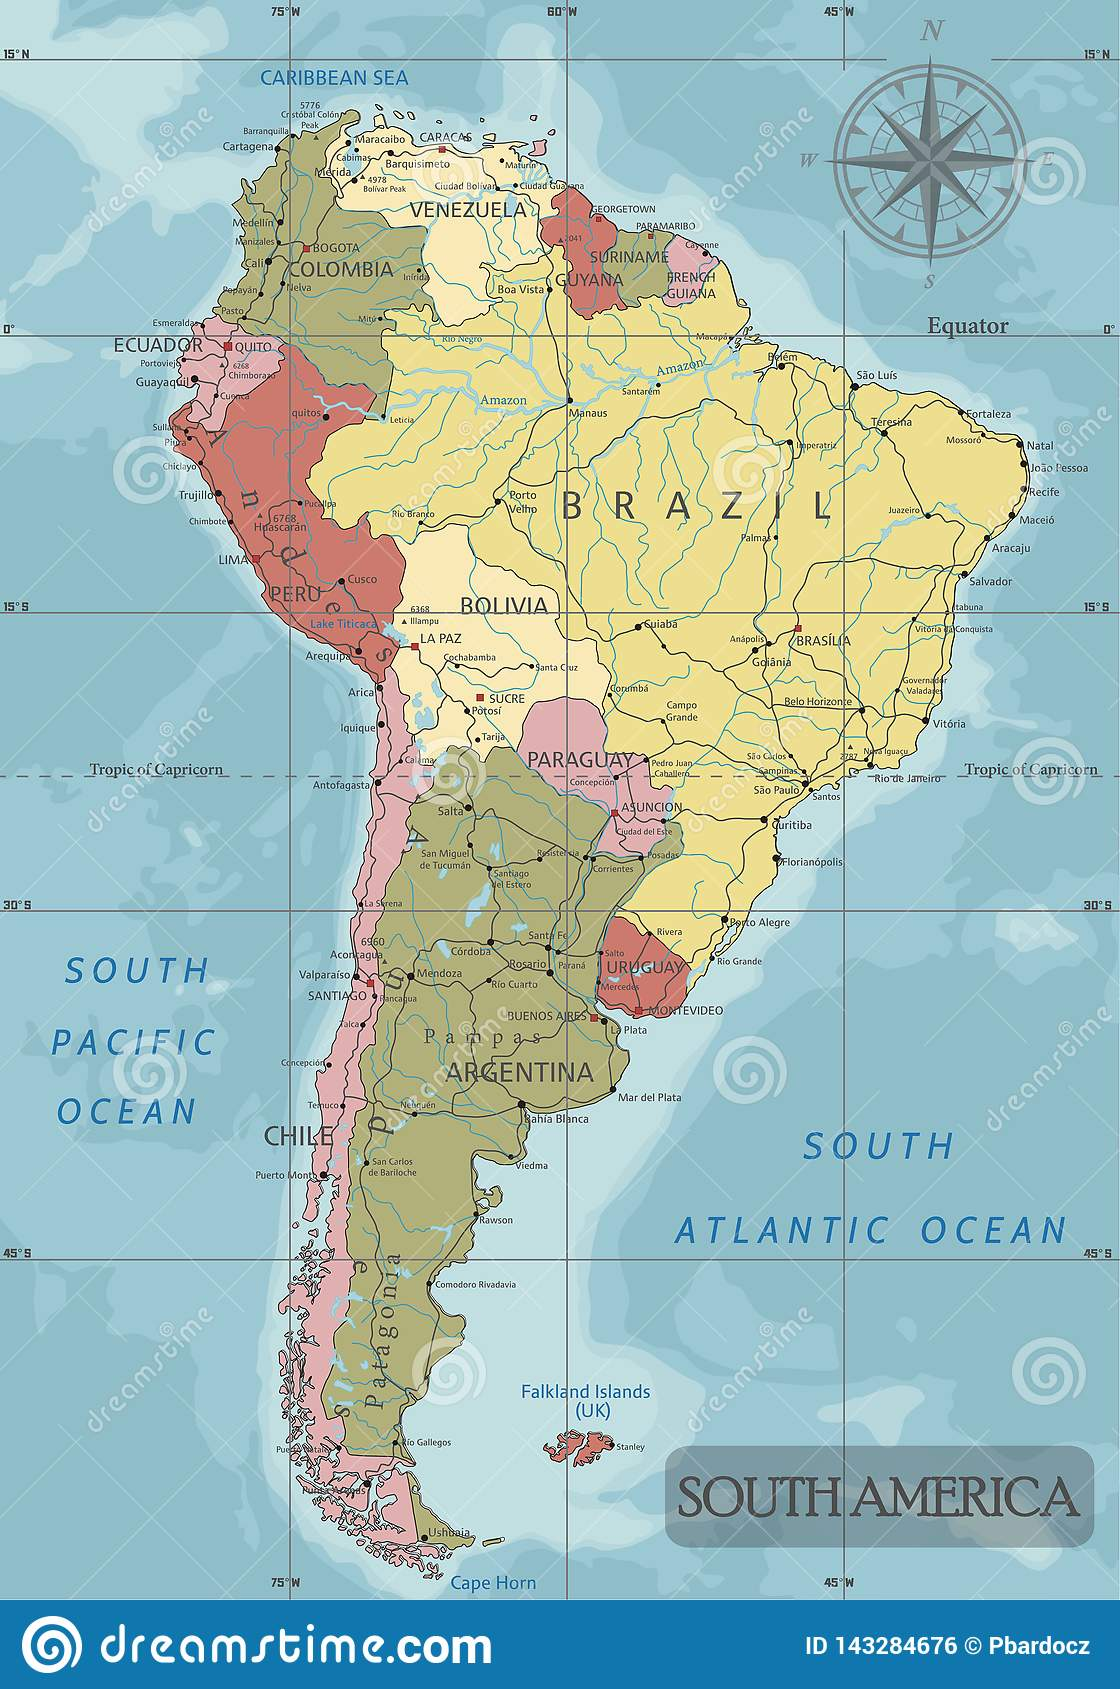 Detailed South America Political Map In Mercator Projection. Clearly on america state map, usa map, texas map, greece's map, europe map, latin america map, kenya's map, portugal's map, brazil's map, indonesia's map, south america map, central america map, canada map, world map, mexico map, africa map, jamaica's map, asia map, c america map, north america map,